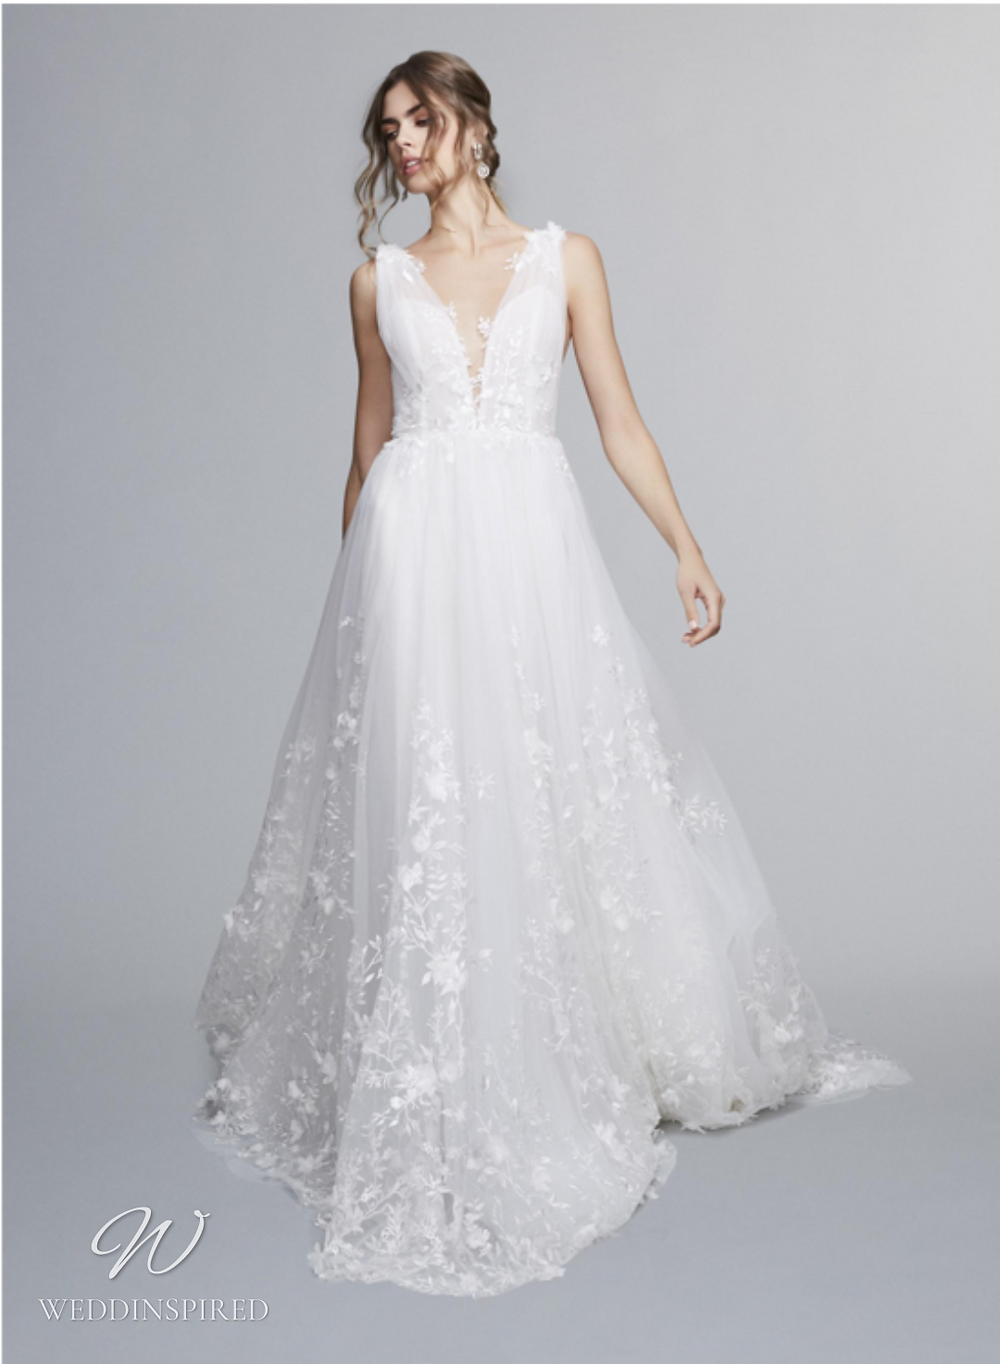 A Marchesa Notte Fall 2021 mesh and tulle A-line wedding dress with thick straps and a v neck